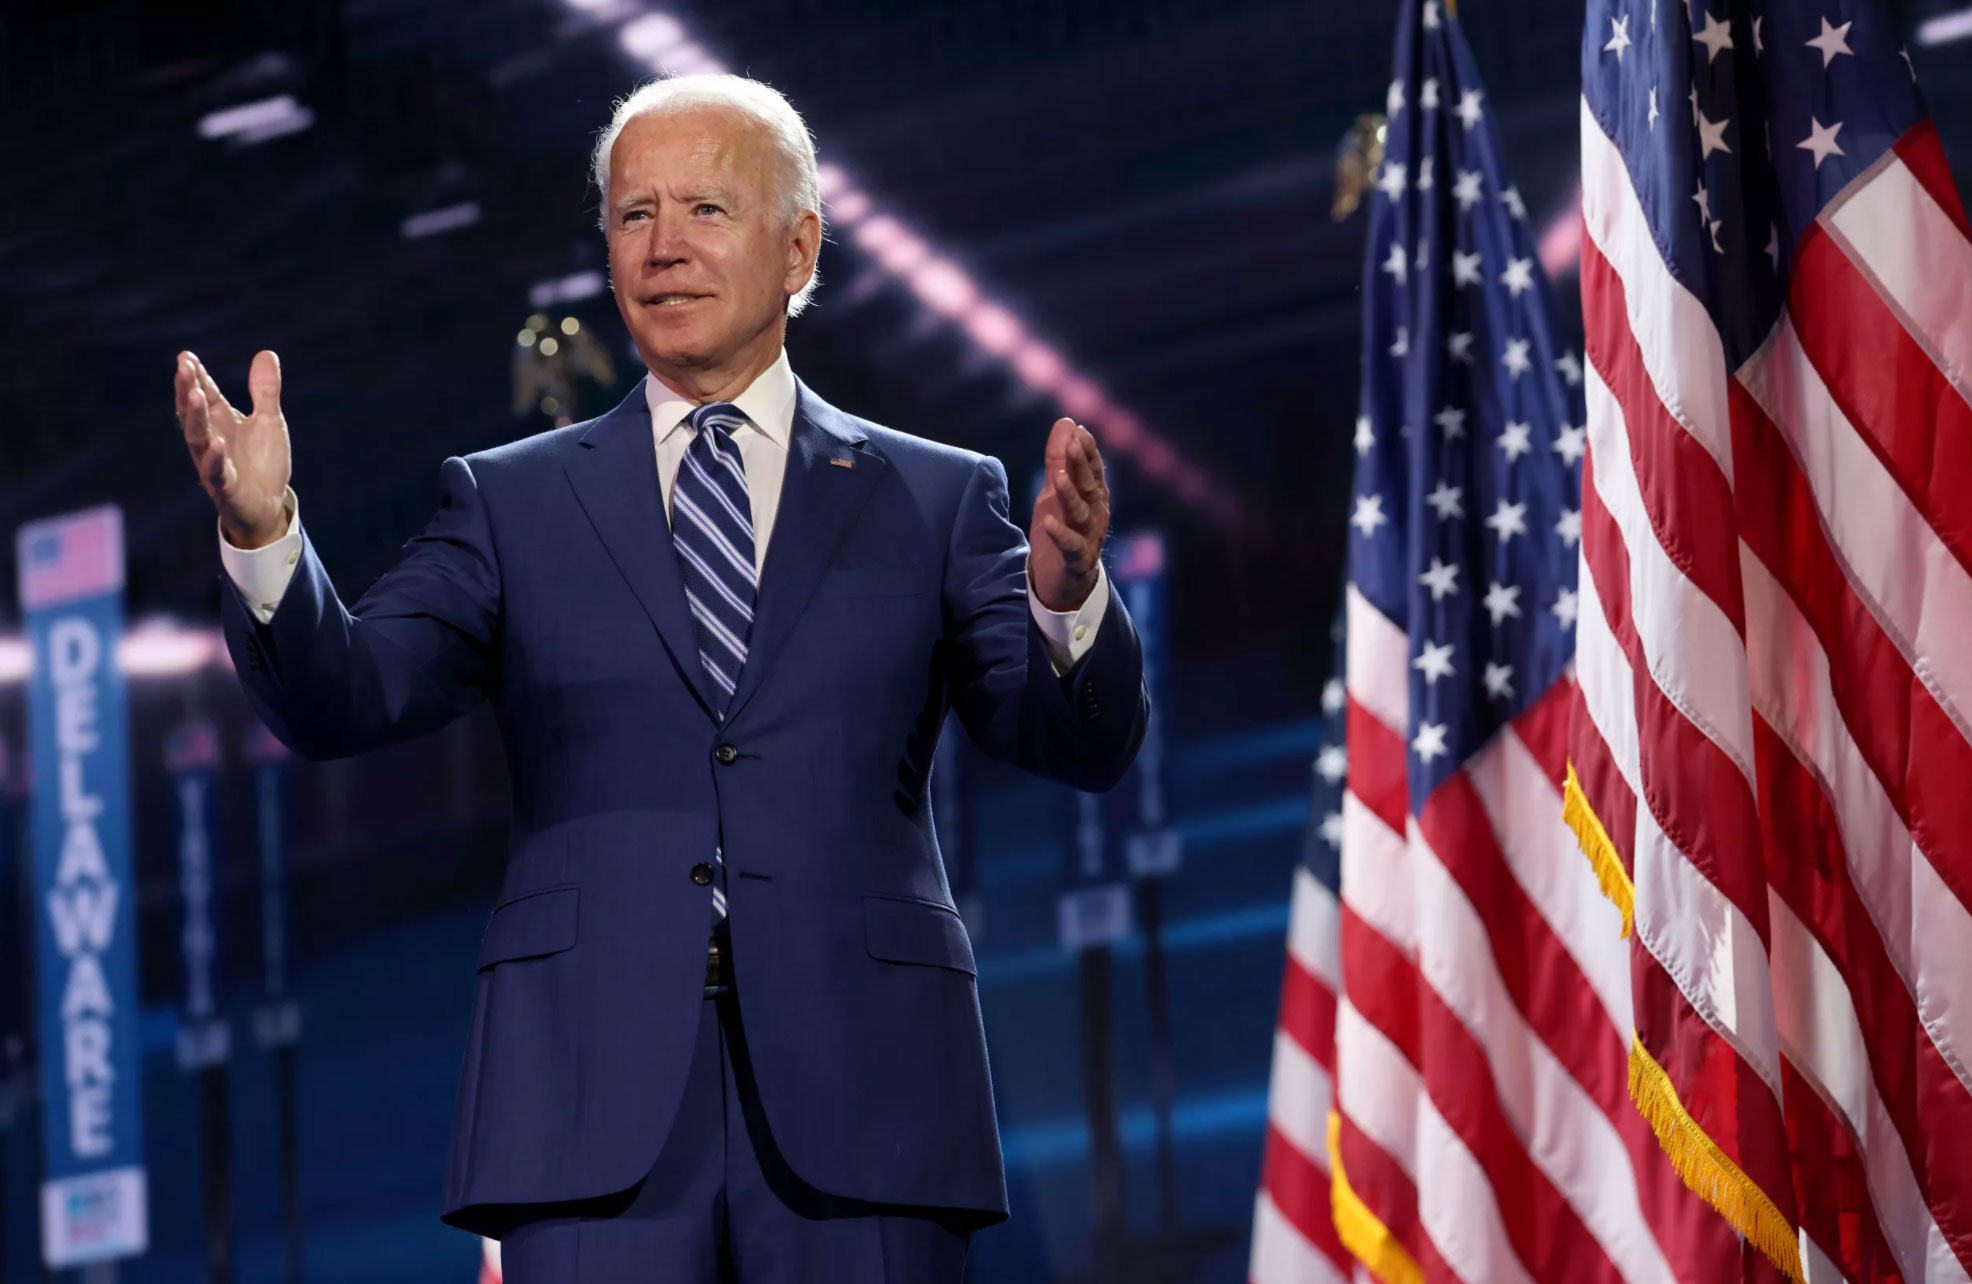 Democratic presidential nominee Joe Biden appears on stage after Democratic vice presidential nominee Sen. Kamala Harris spoke during the third night of the Democratic National Convention from the Chase Center in Wilmington, Delaware on August 19, 2020. (Source: Win McNamee/Getty)